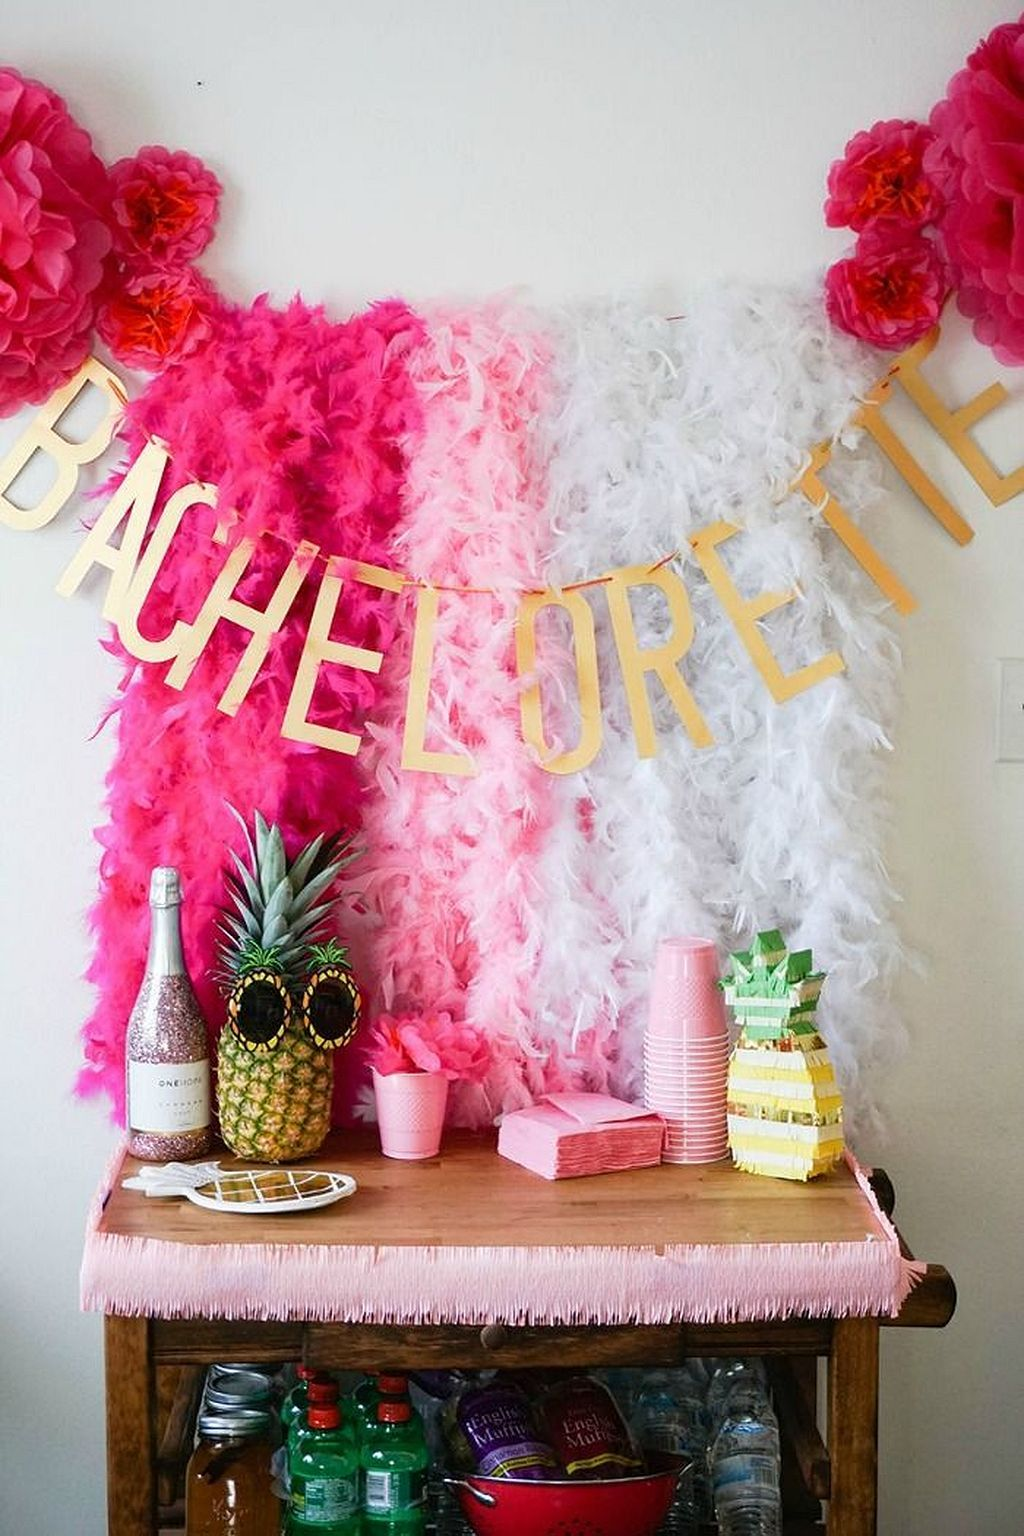 Stunning 60+ Bachelorette Party Decor Ideas //weddmagz.com/60- bachelorette-party-decor-ideas/ : bachelorette party decor ideas - www.pureclipart.com